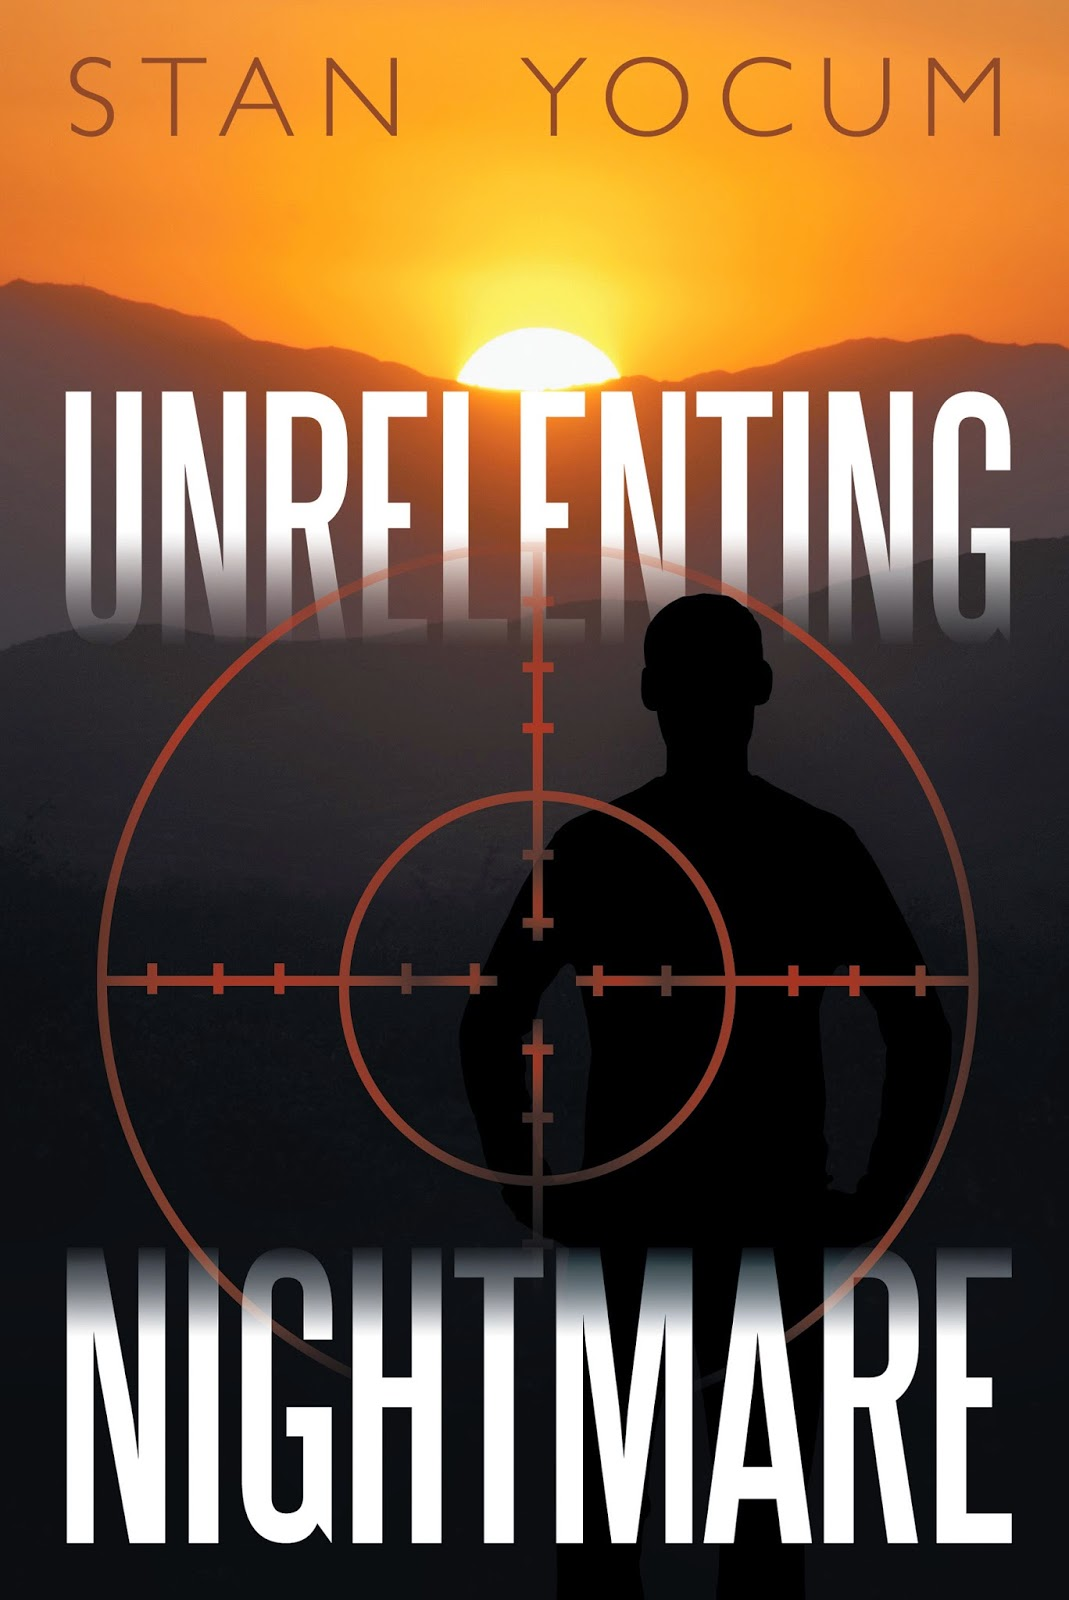 stan yocum, unrelenting nightmare, suspense novel